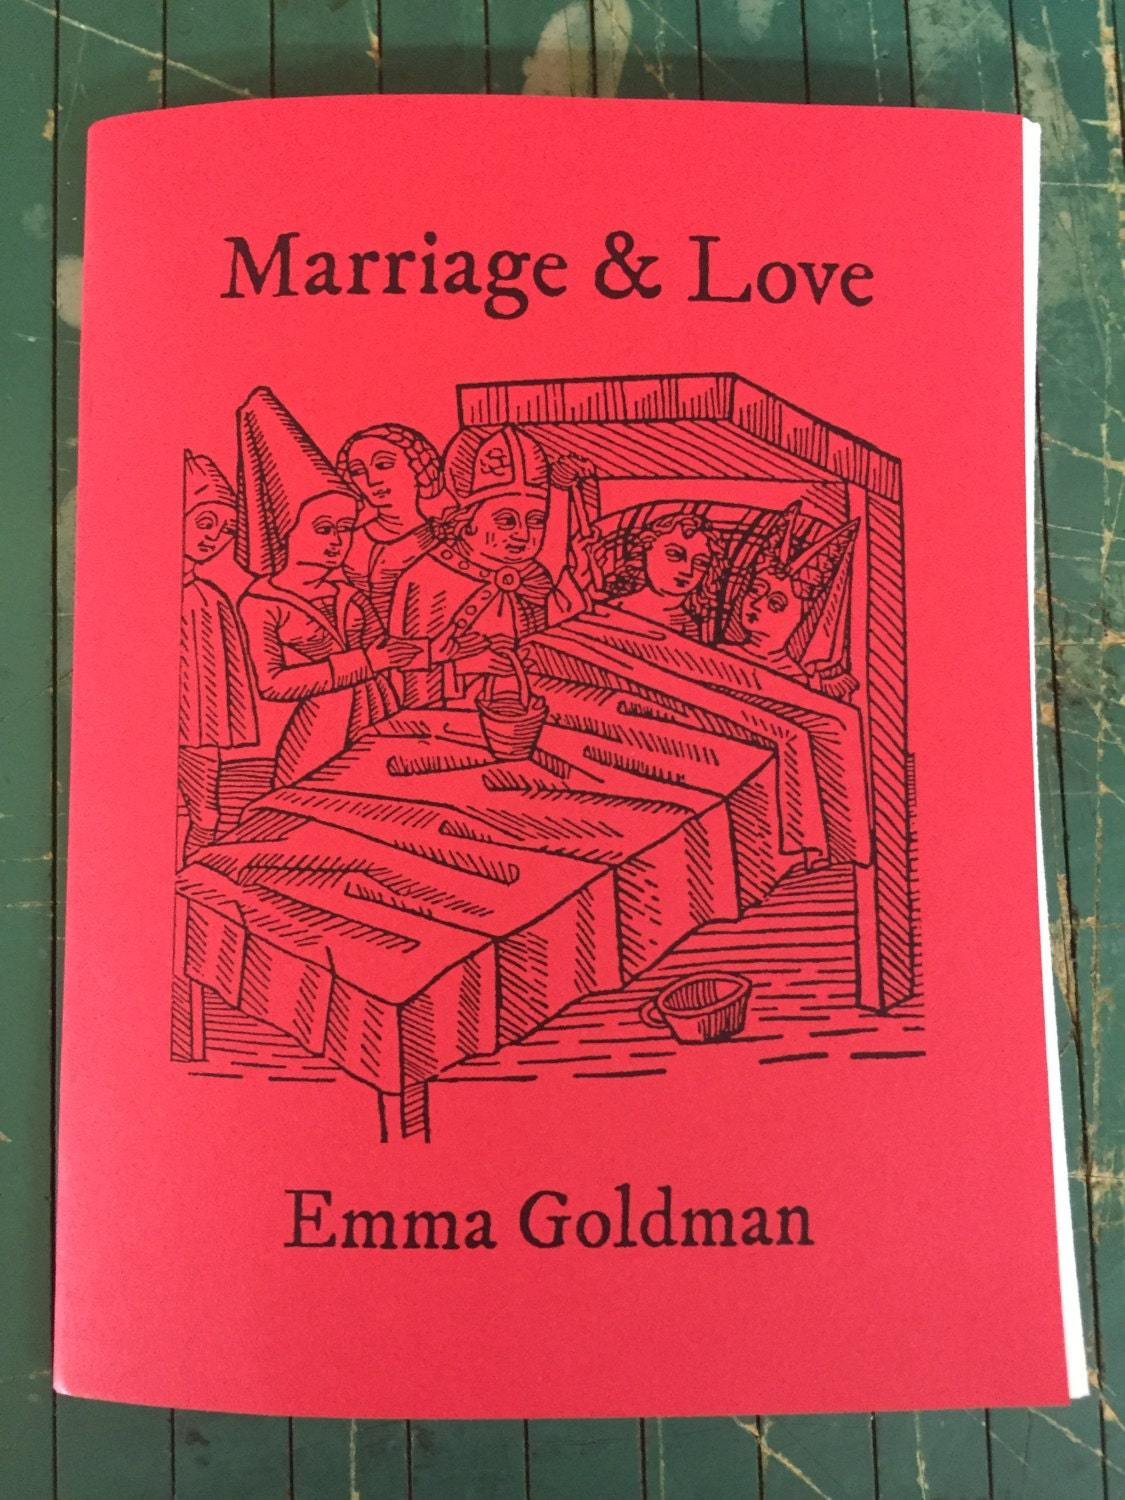 emma goldman marriage and love Emma goldmans speech essay emma goldmans speech essay 1593 words 7 pages jane austen, presents the themes of love and marriage in the novel emma for emma goldman, the stakes were considerably higher.